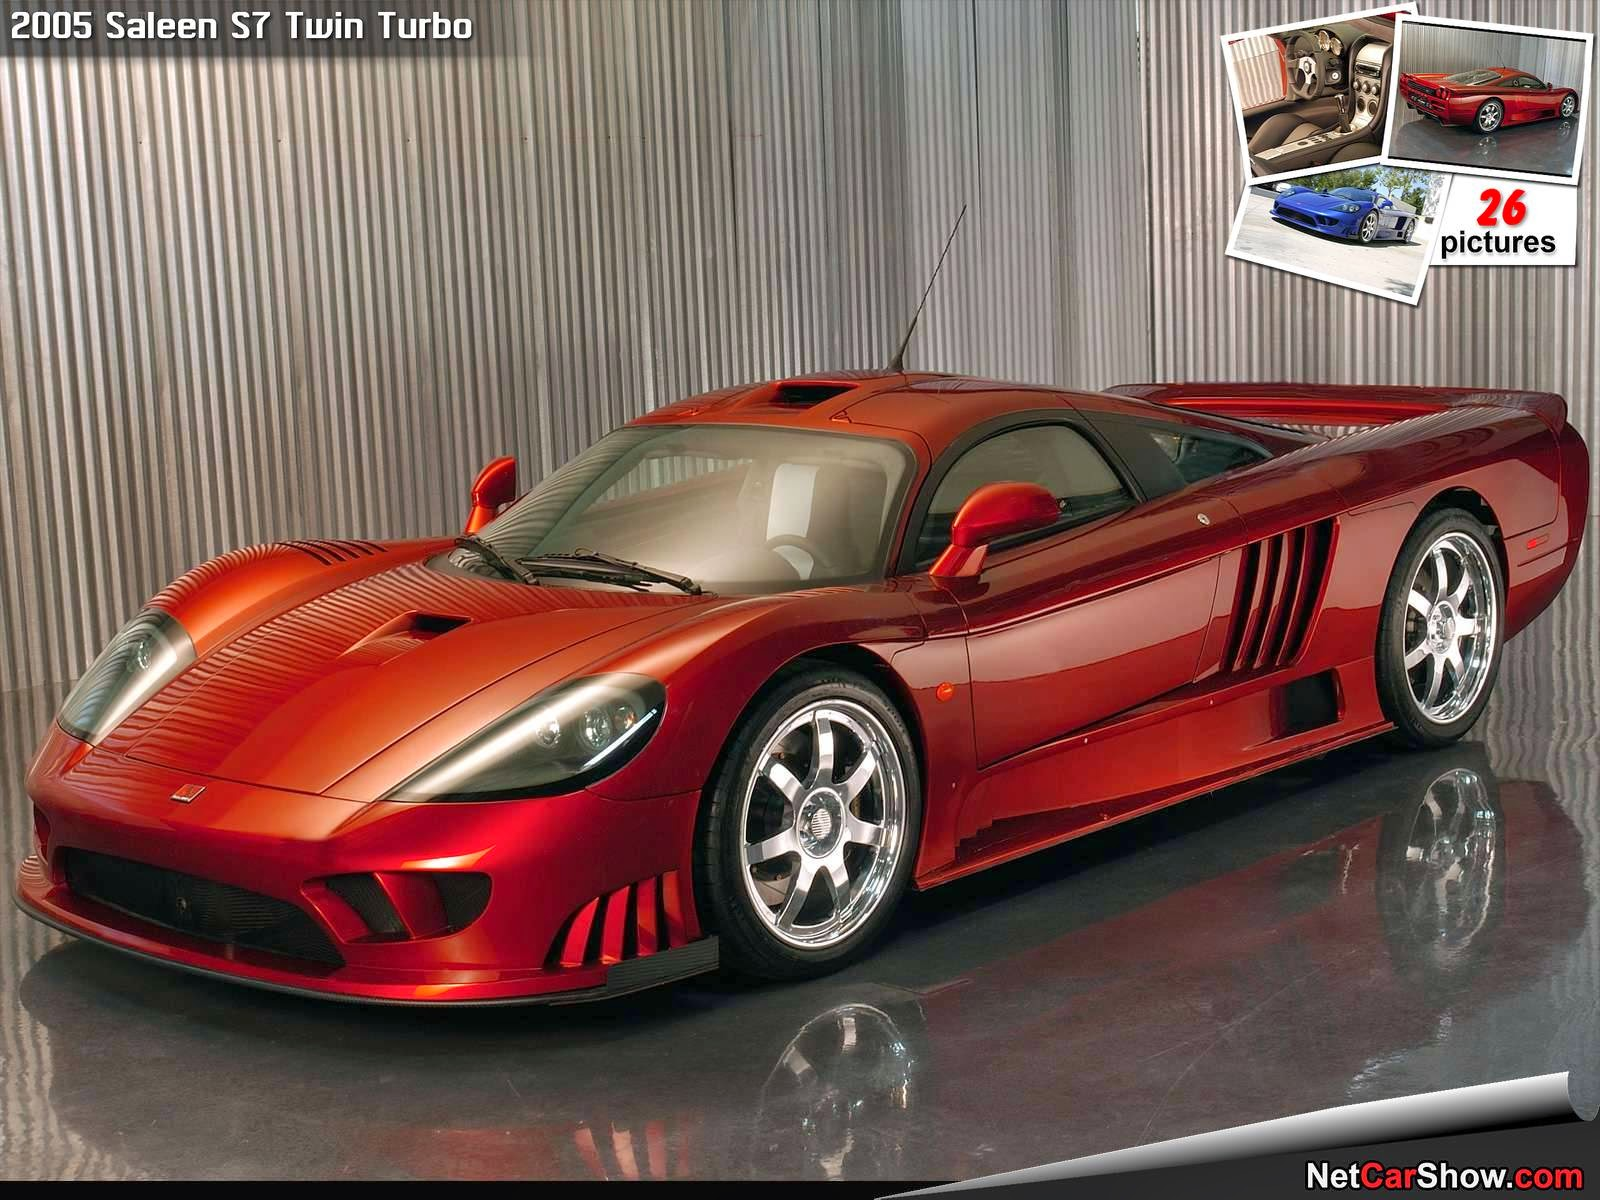 Fastest Car In The World 2015 >> Fastest Cars Koenigsegg Agera R 2015 Fastest Cars In The